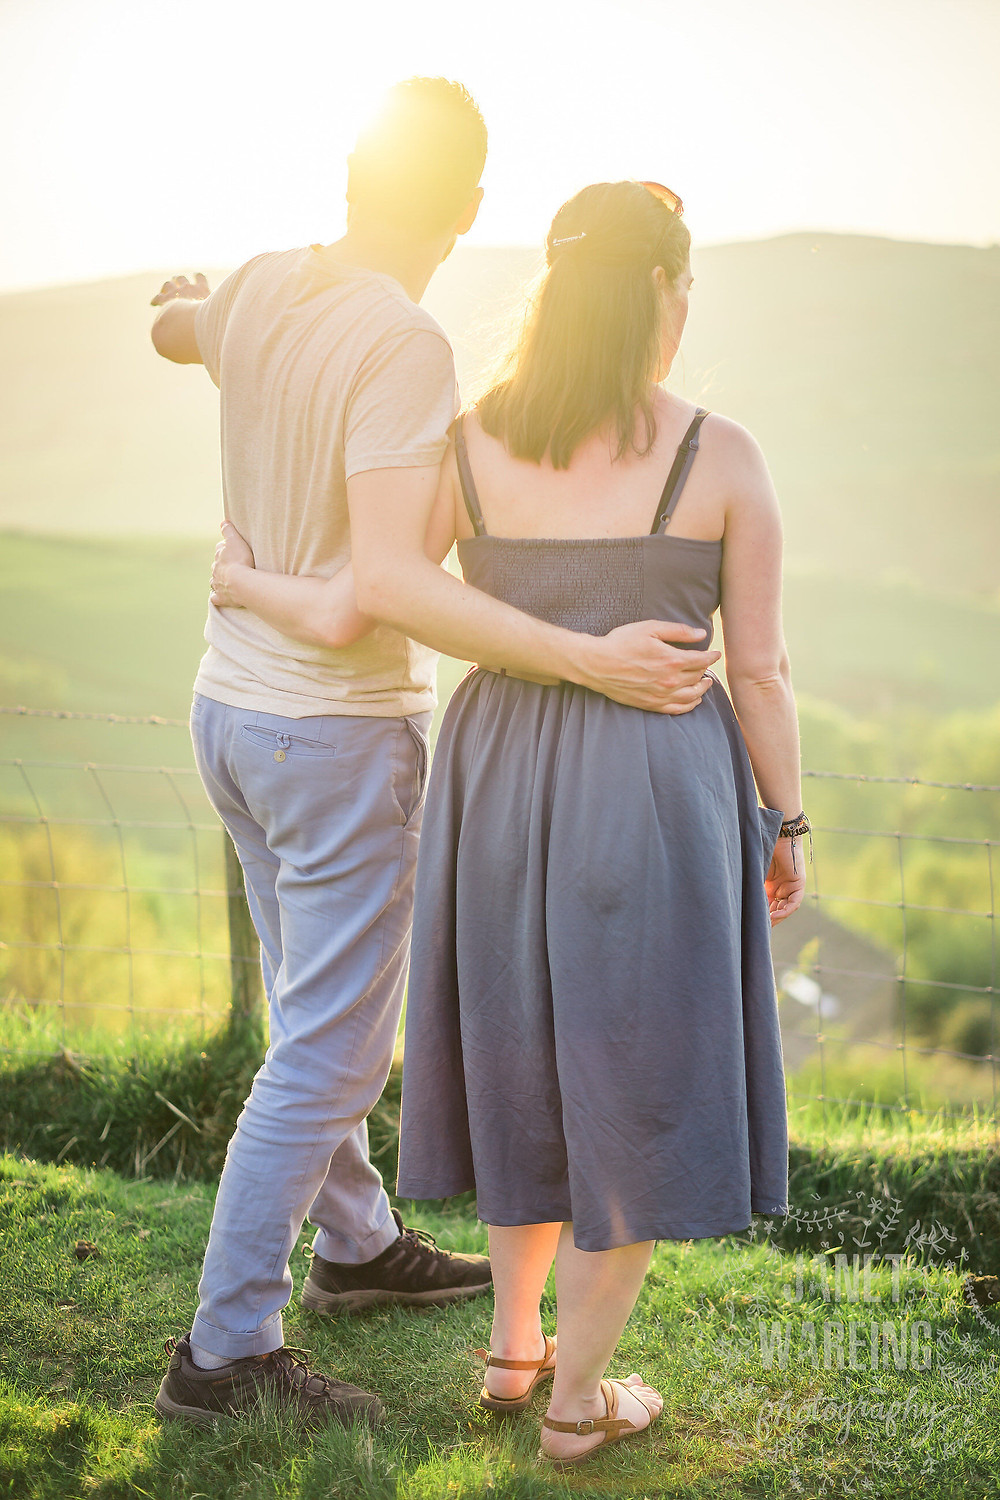 engagement shoot, engagement photographer, west yorkshire, hebden bridge, todmorden, natural, relaxed, unposed, documentary, wedding photography, alternative, best photographers, north west wedding photographer, stoodley pike monument